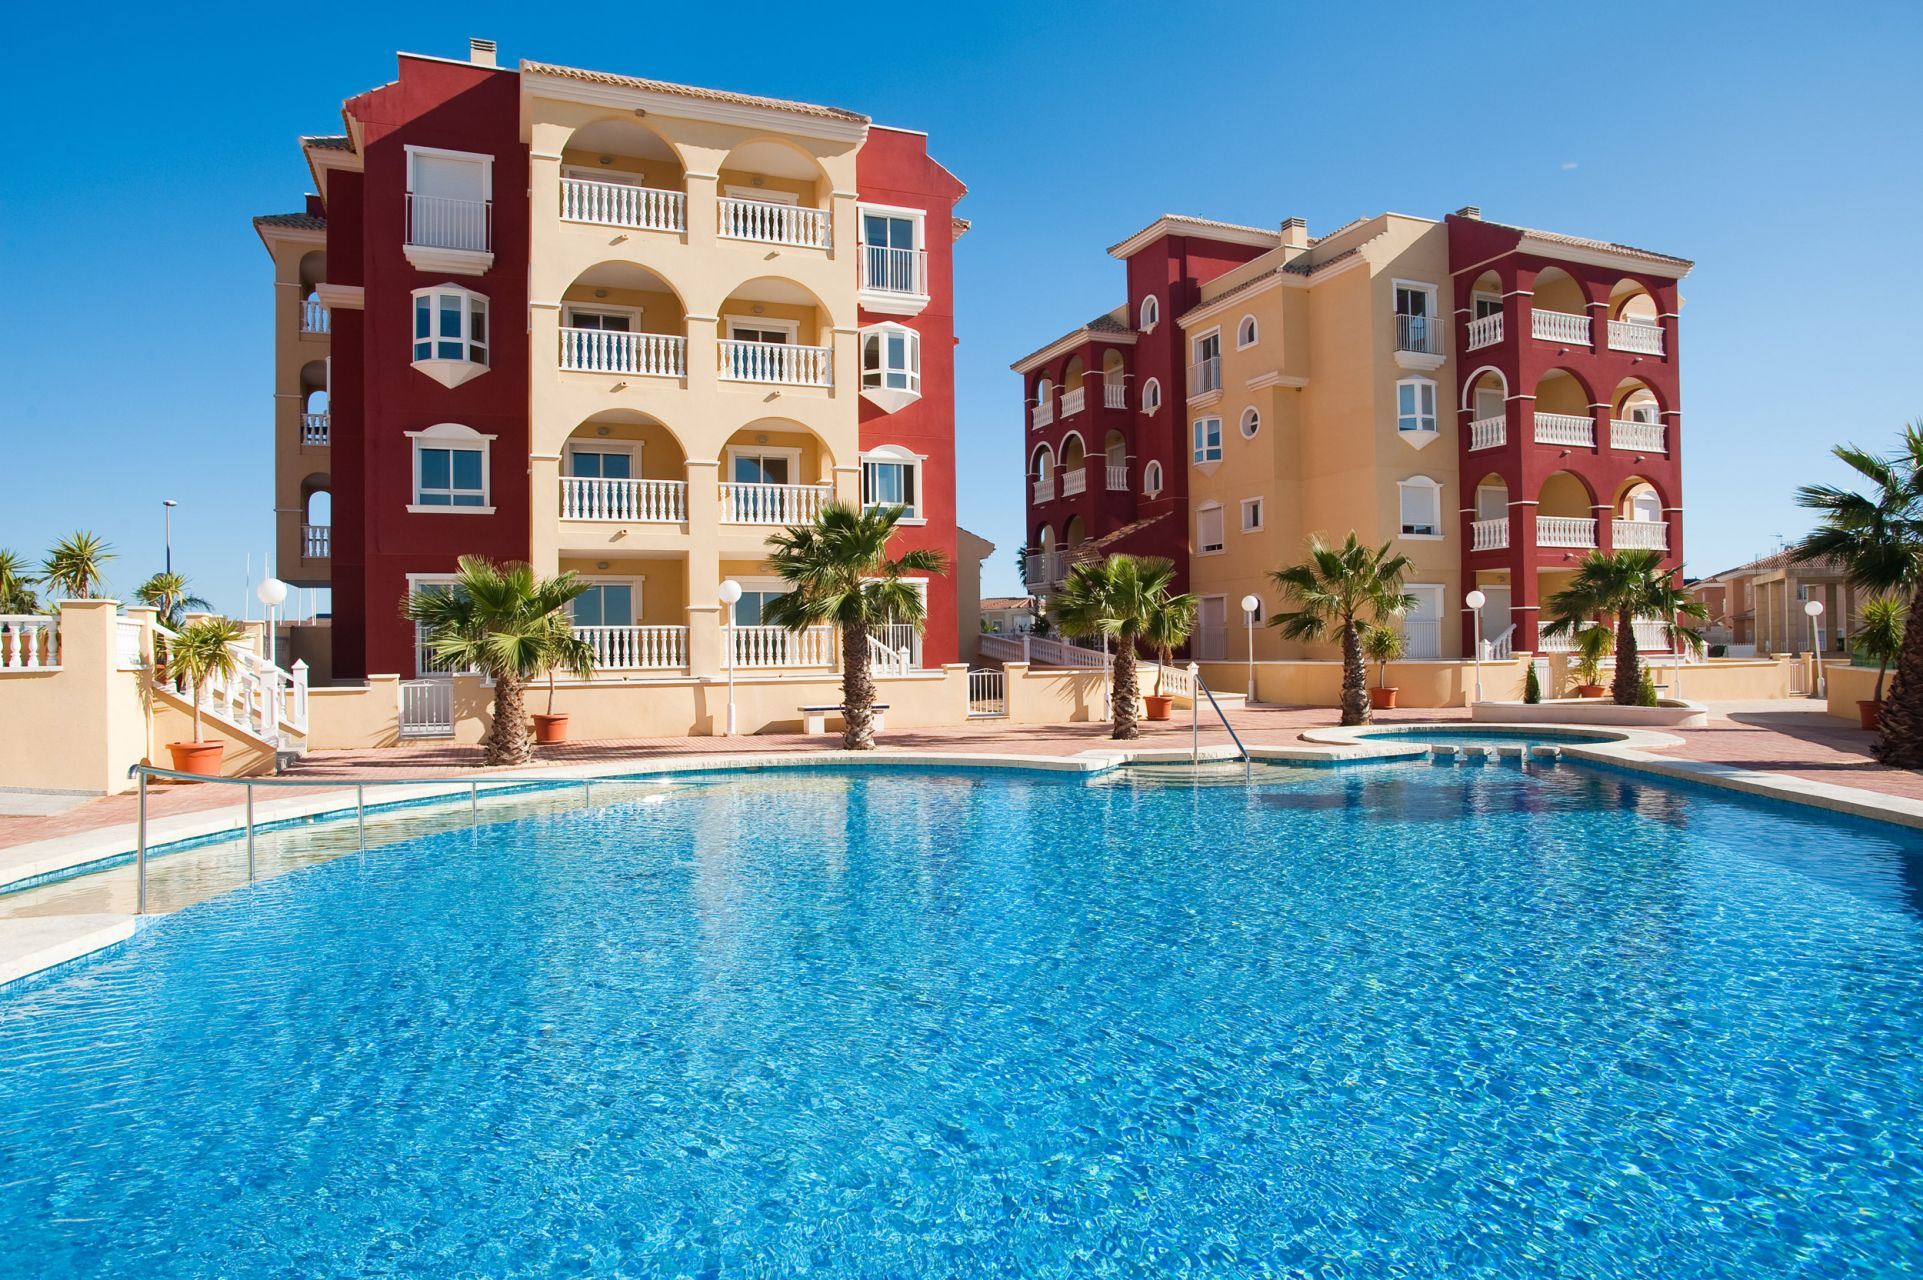 Apartments in Los Alcazares 1